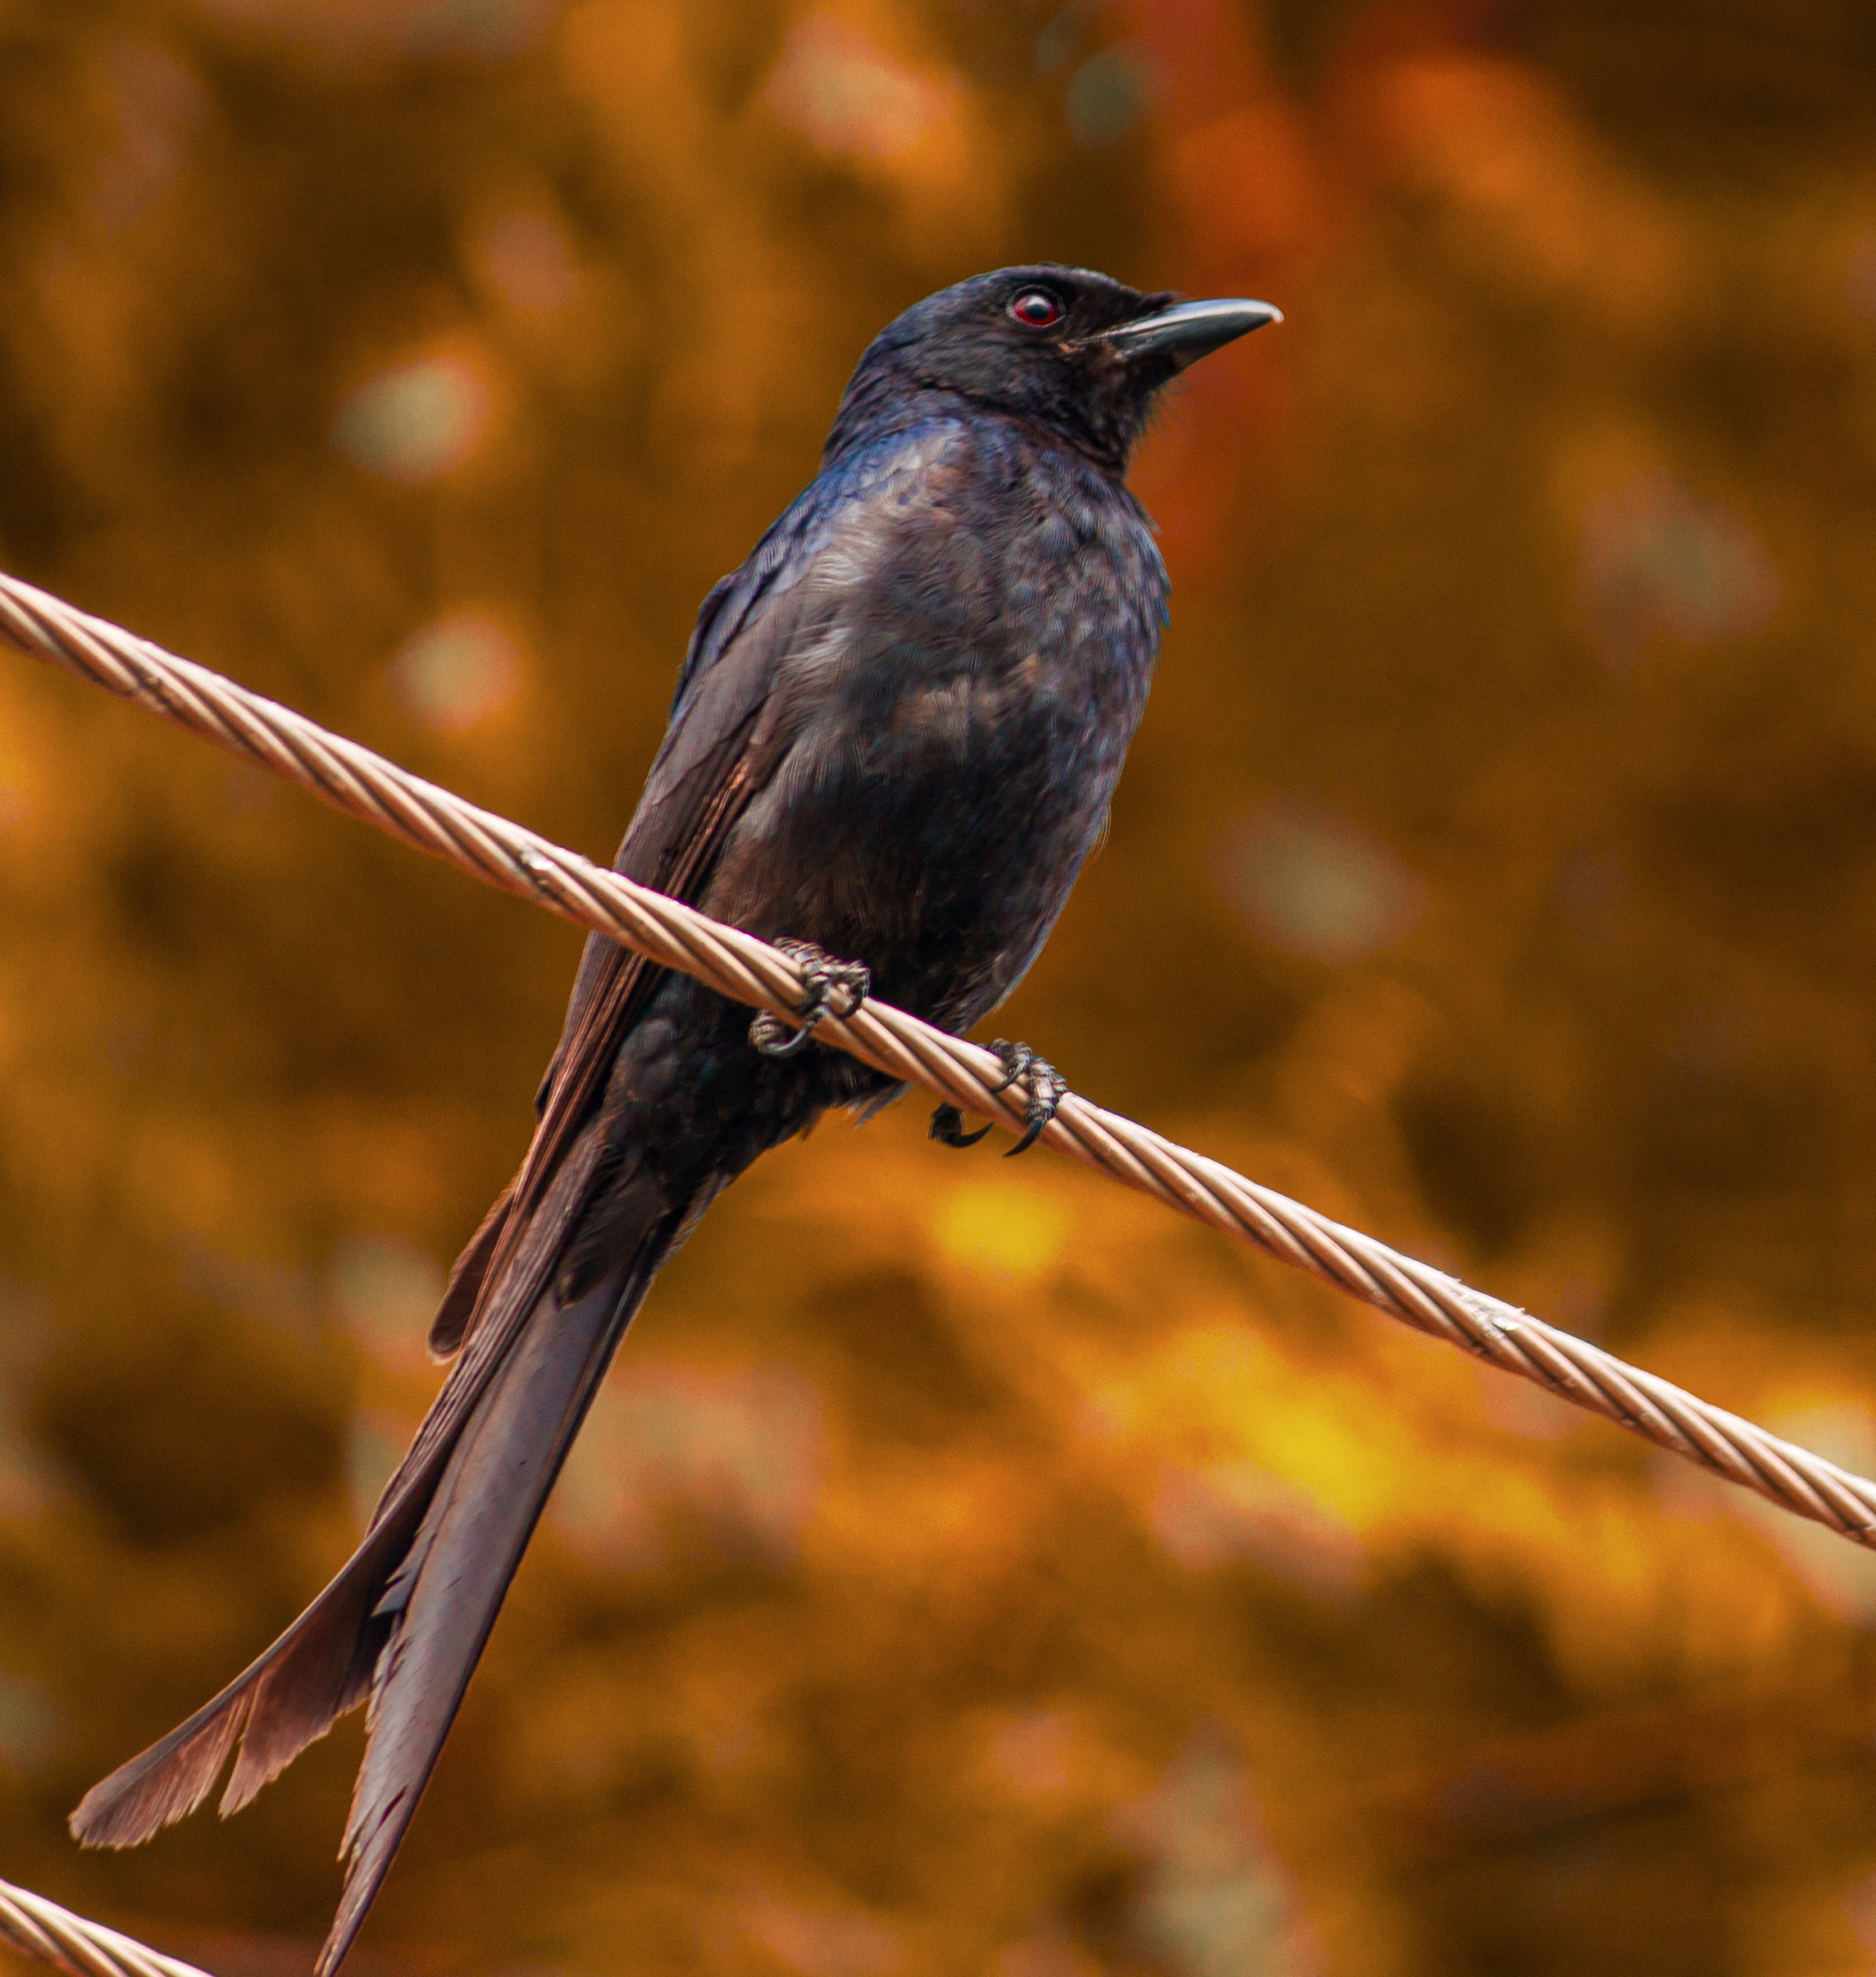 Black Drongo sitting on electrical wire